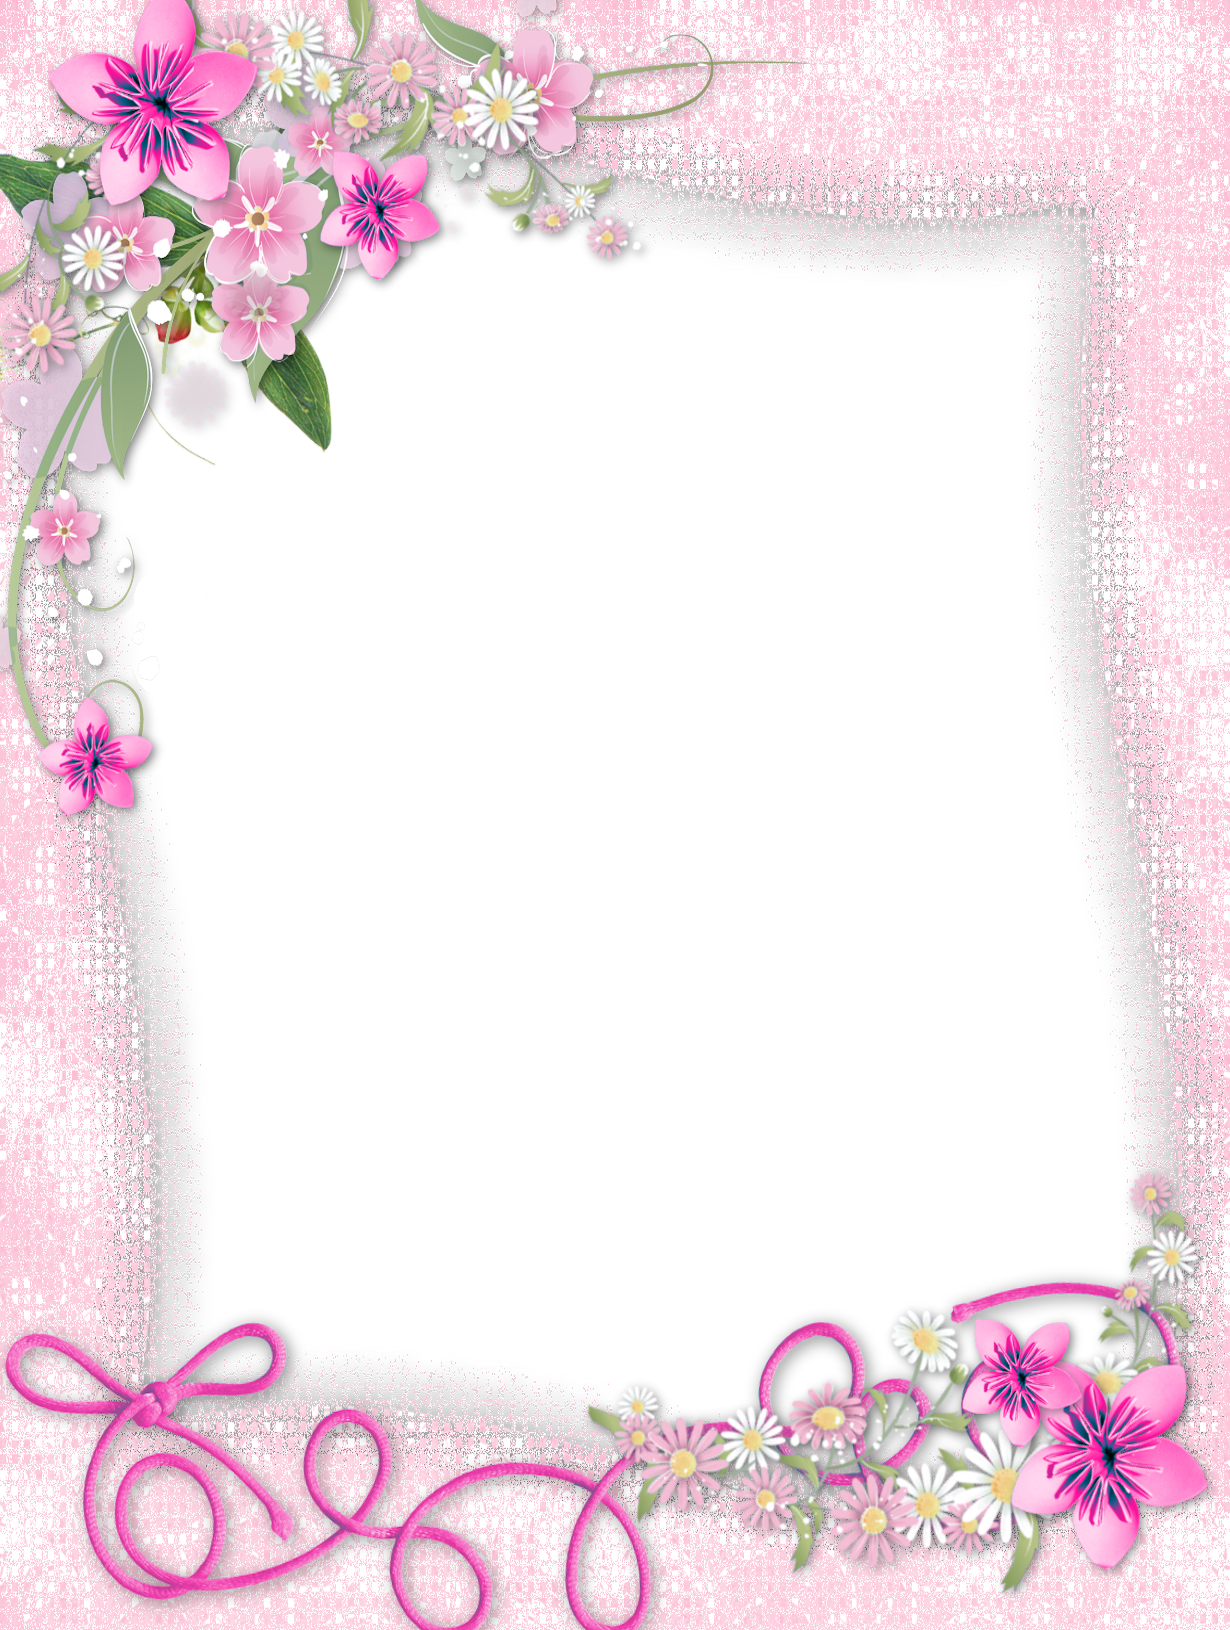 Marriage angels frames png. Transparent pink frame with